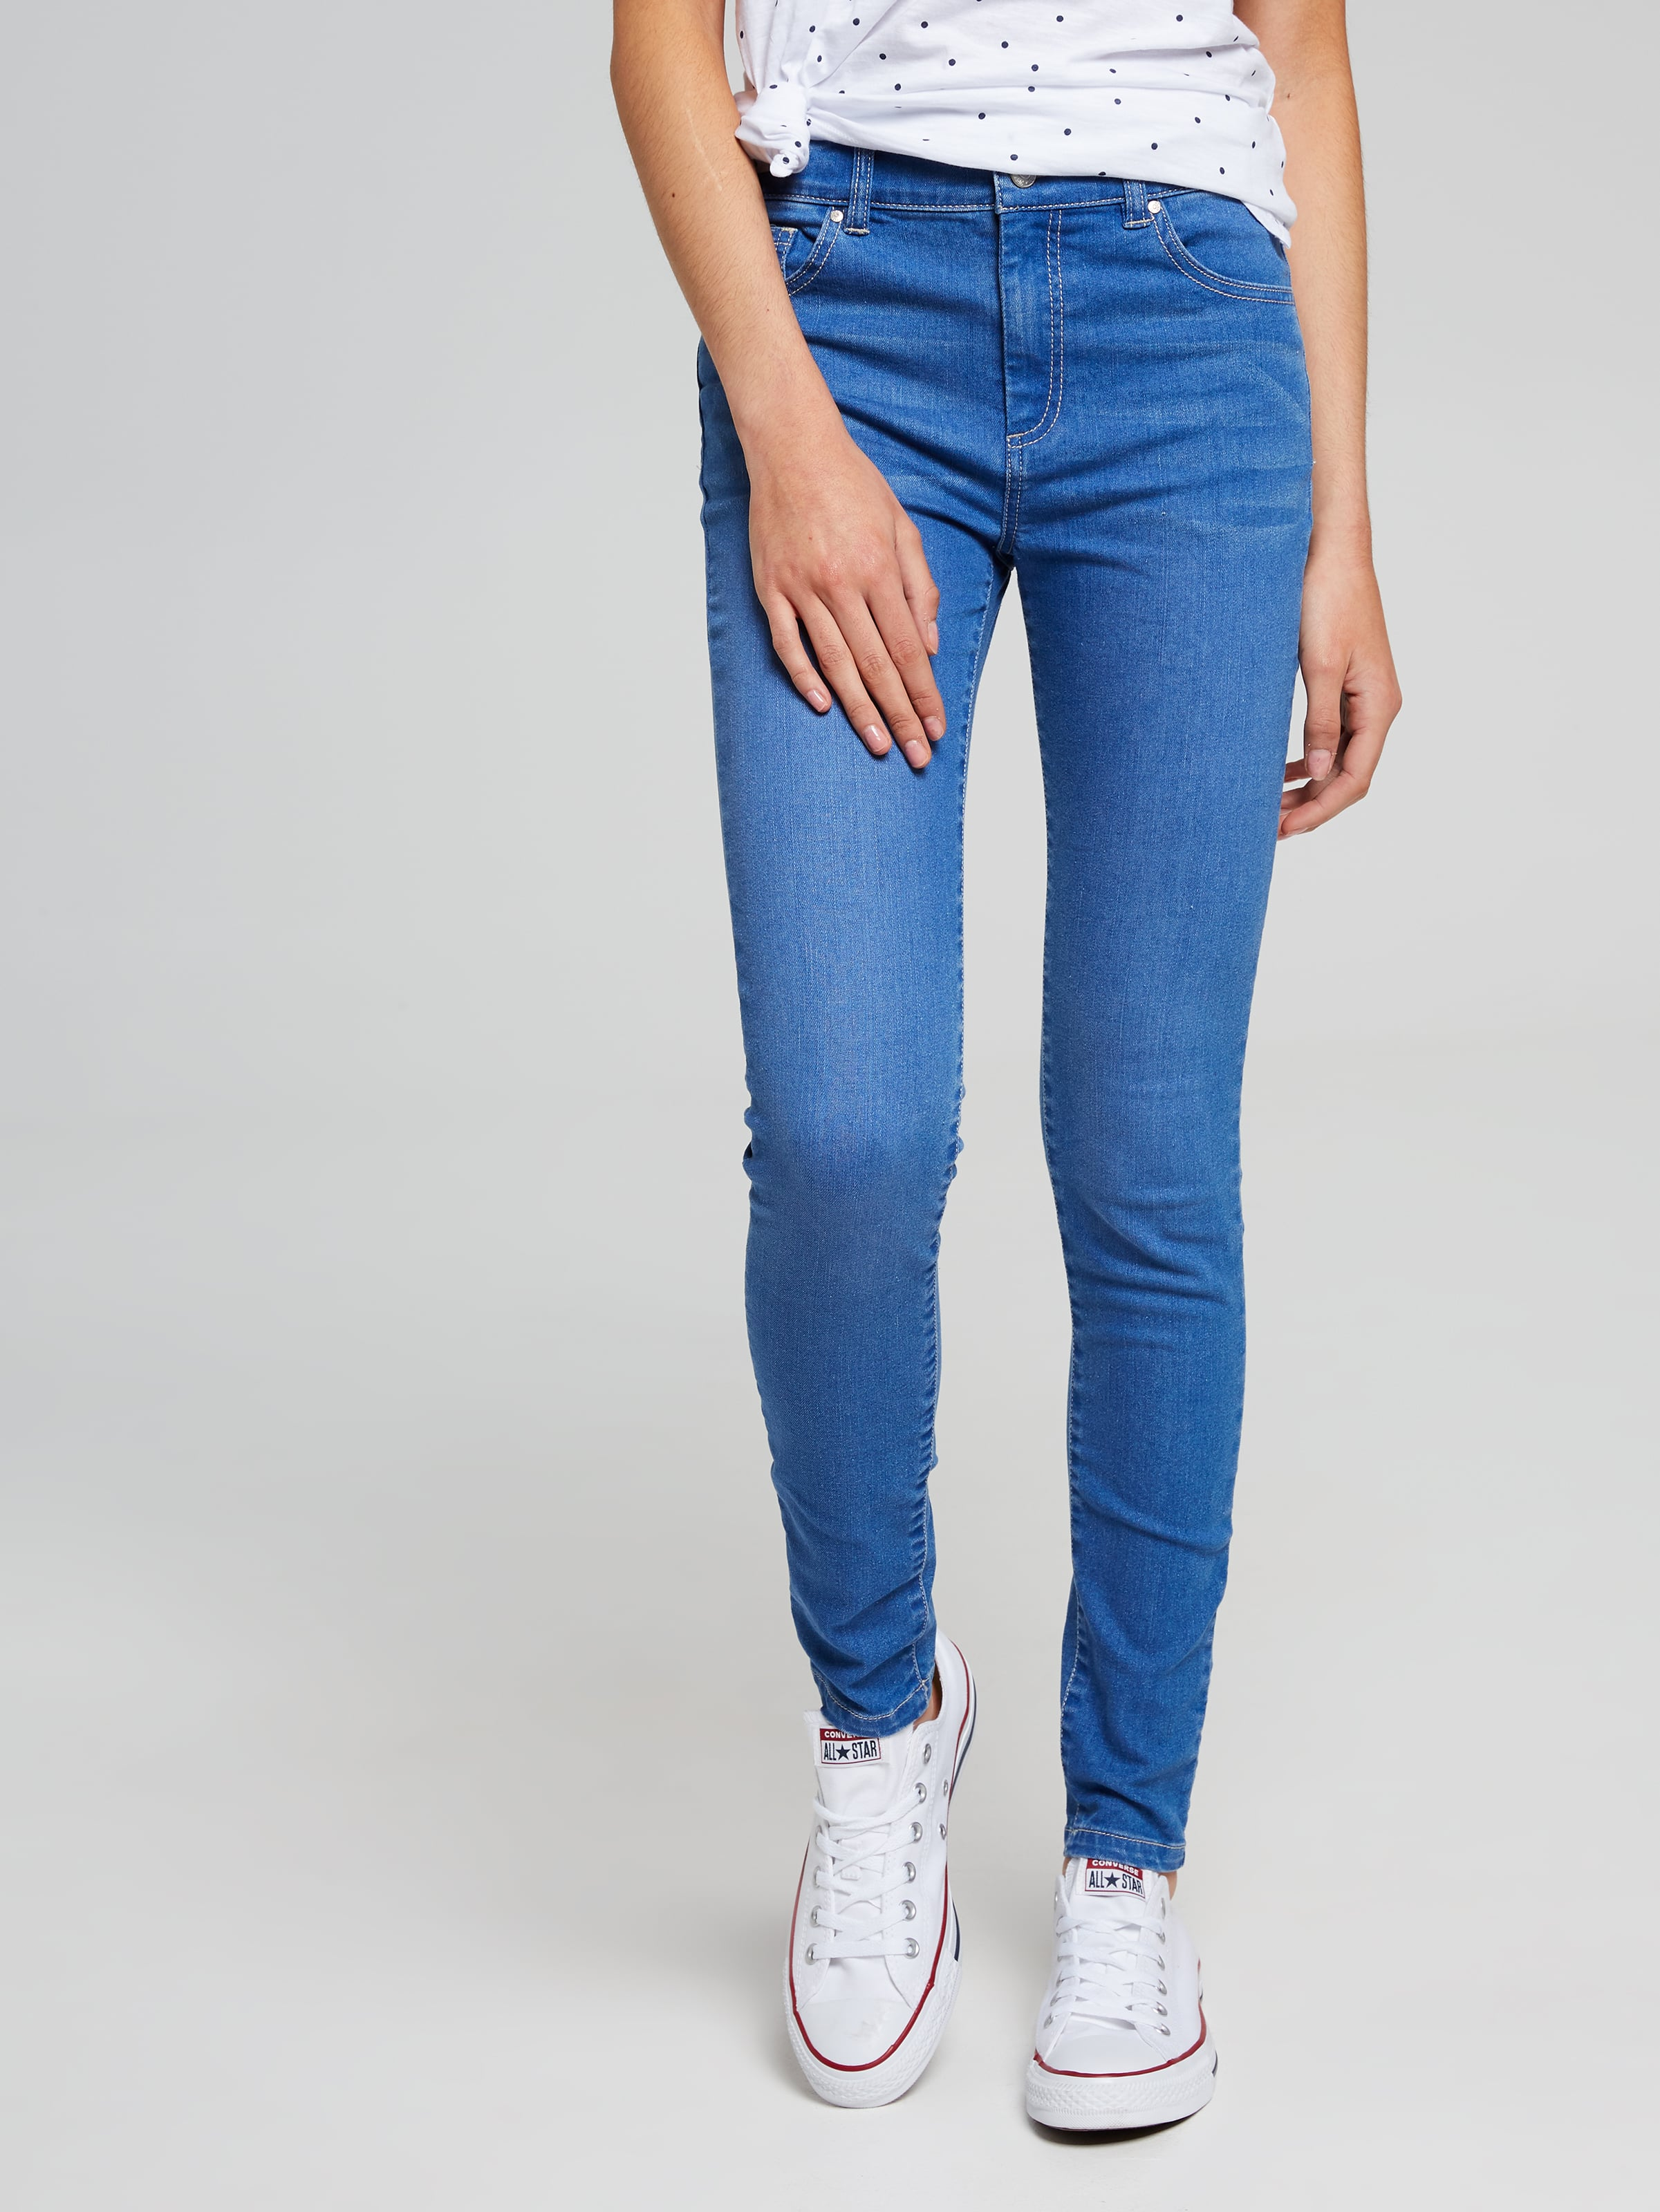 d622bf4133d Image for Girls Bianca Blue Skinny Jean from Just Jeans ...